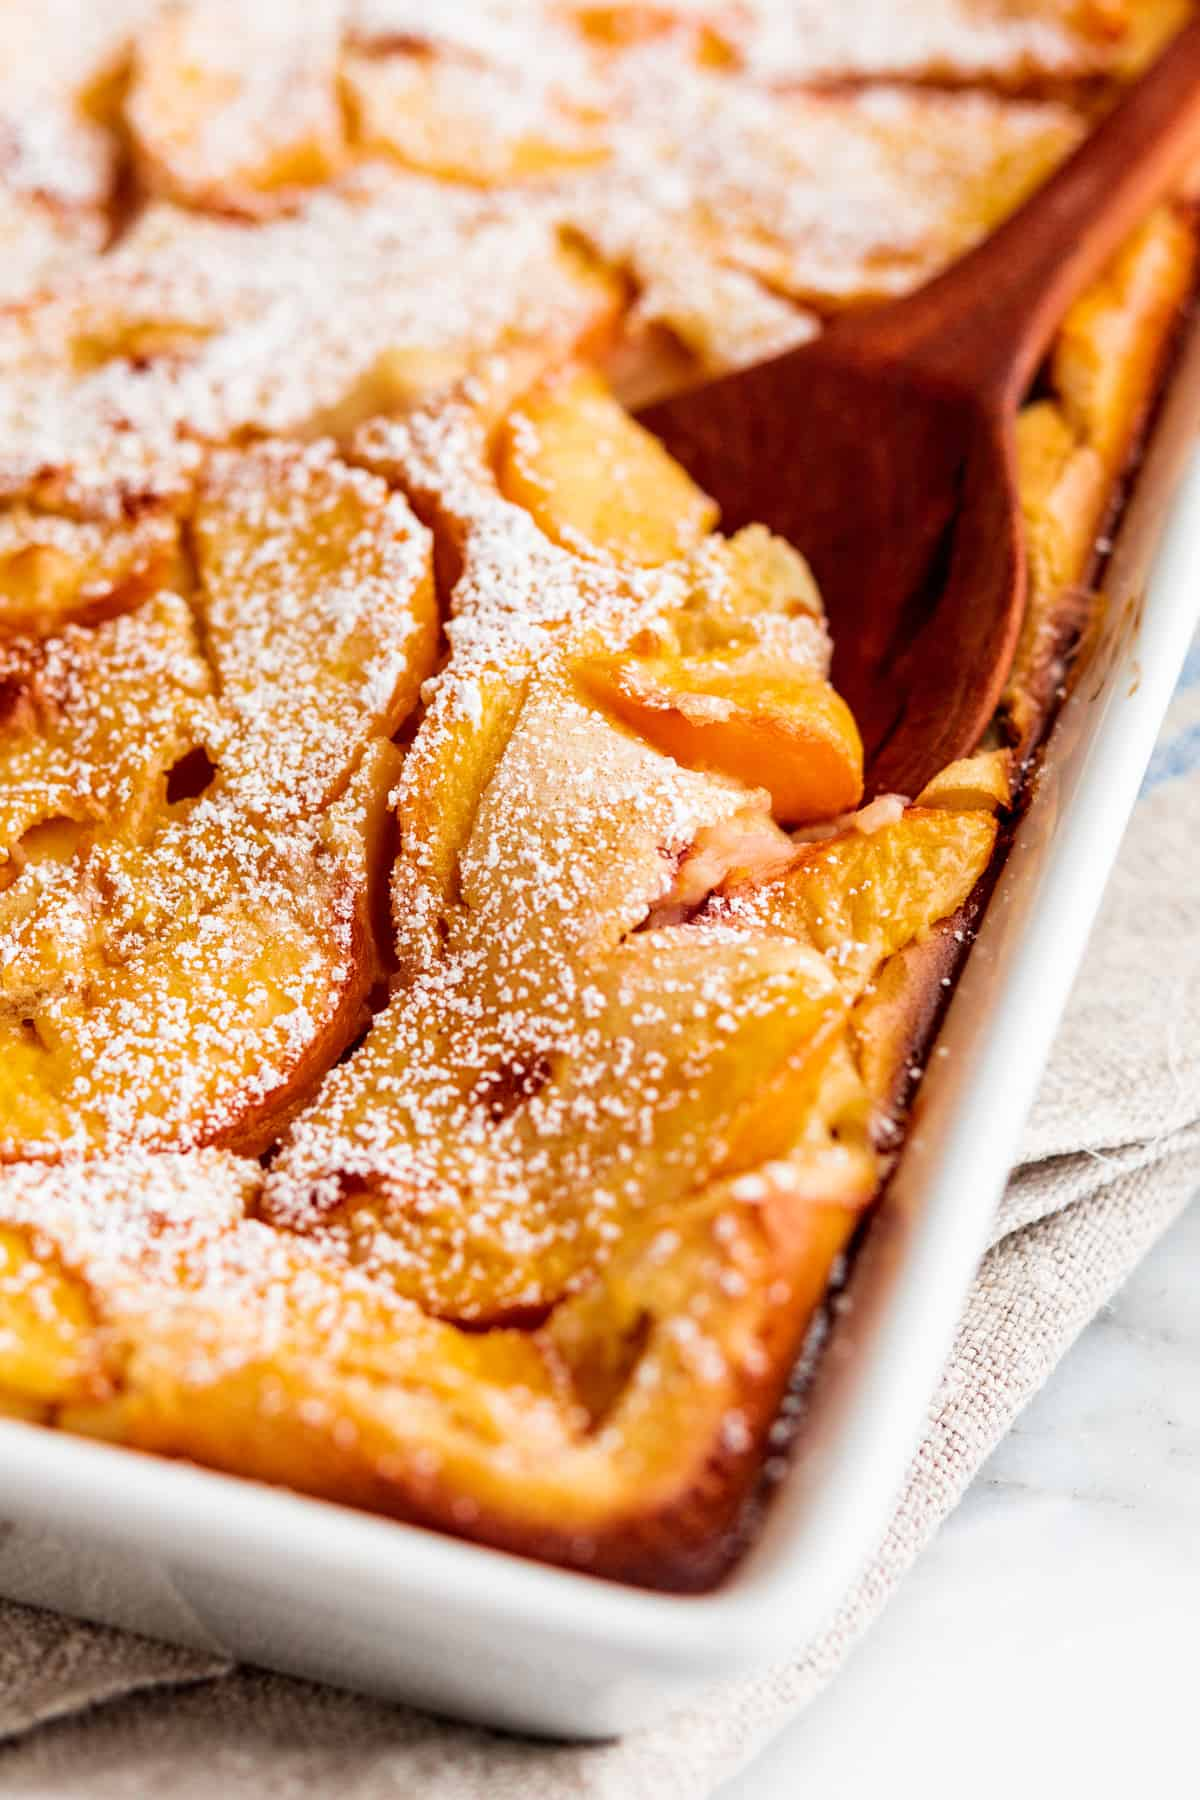 Peach Clafoutis baked in a white ceramic baking dish served with a wooden serving spoon.